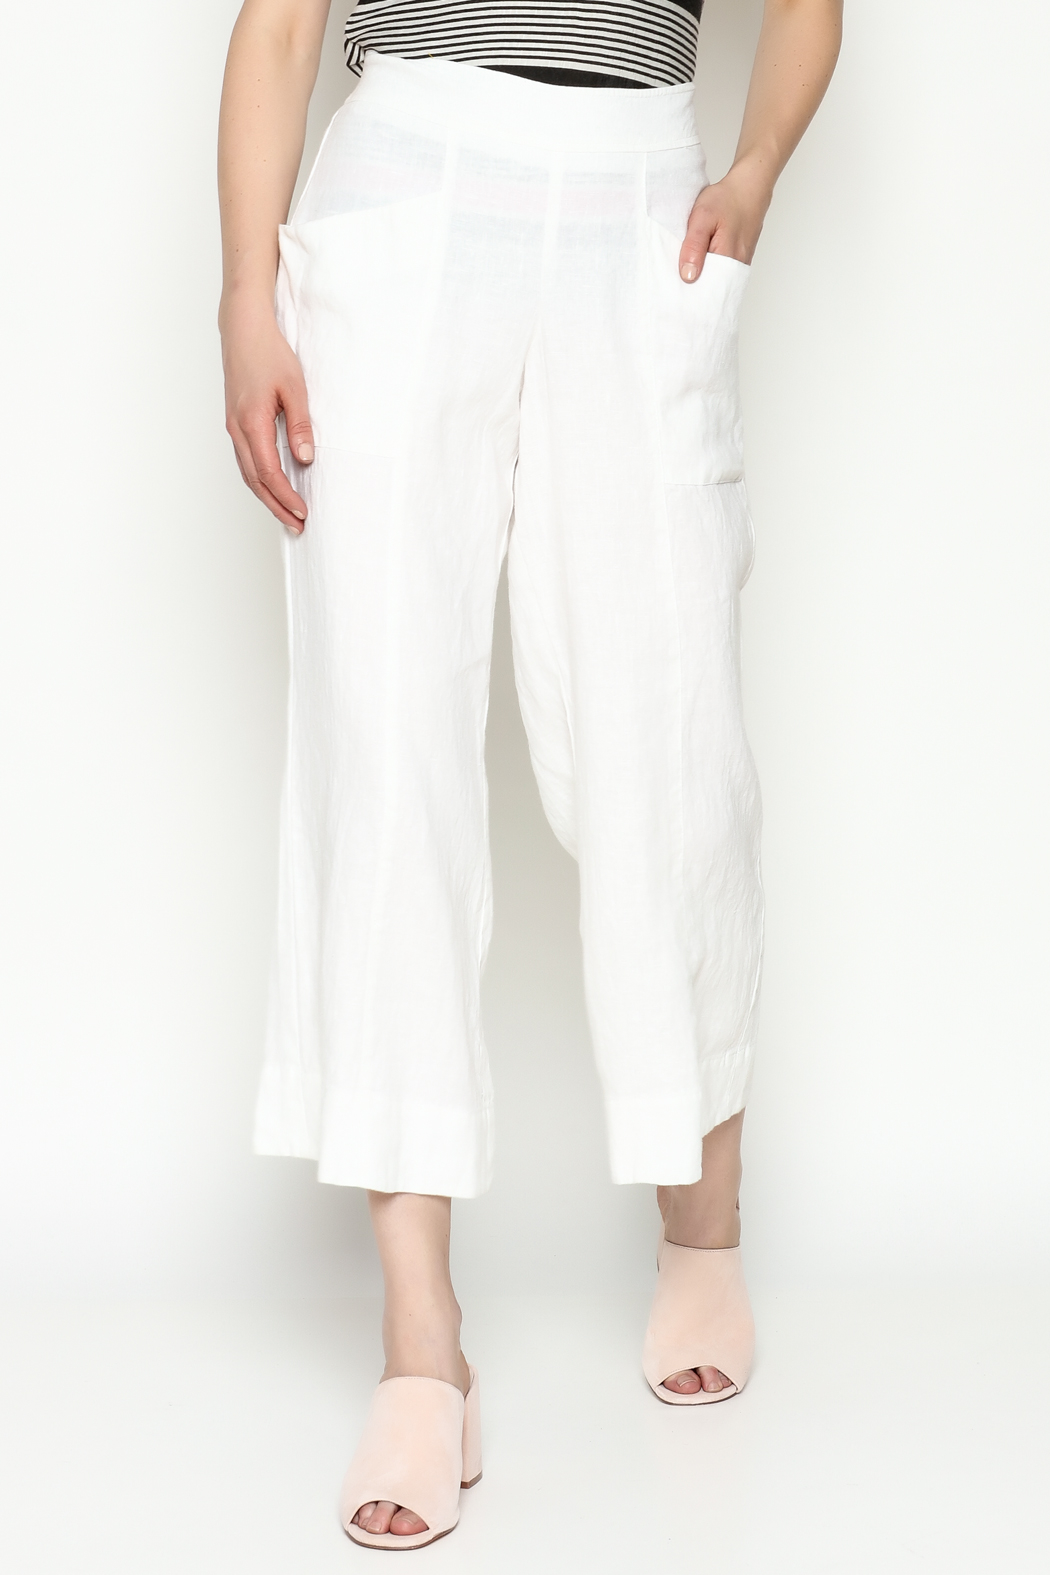 Cousin Earl White Linen Pants - Front Cropped Image